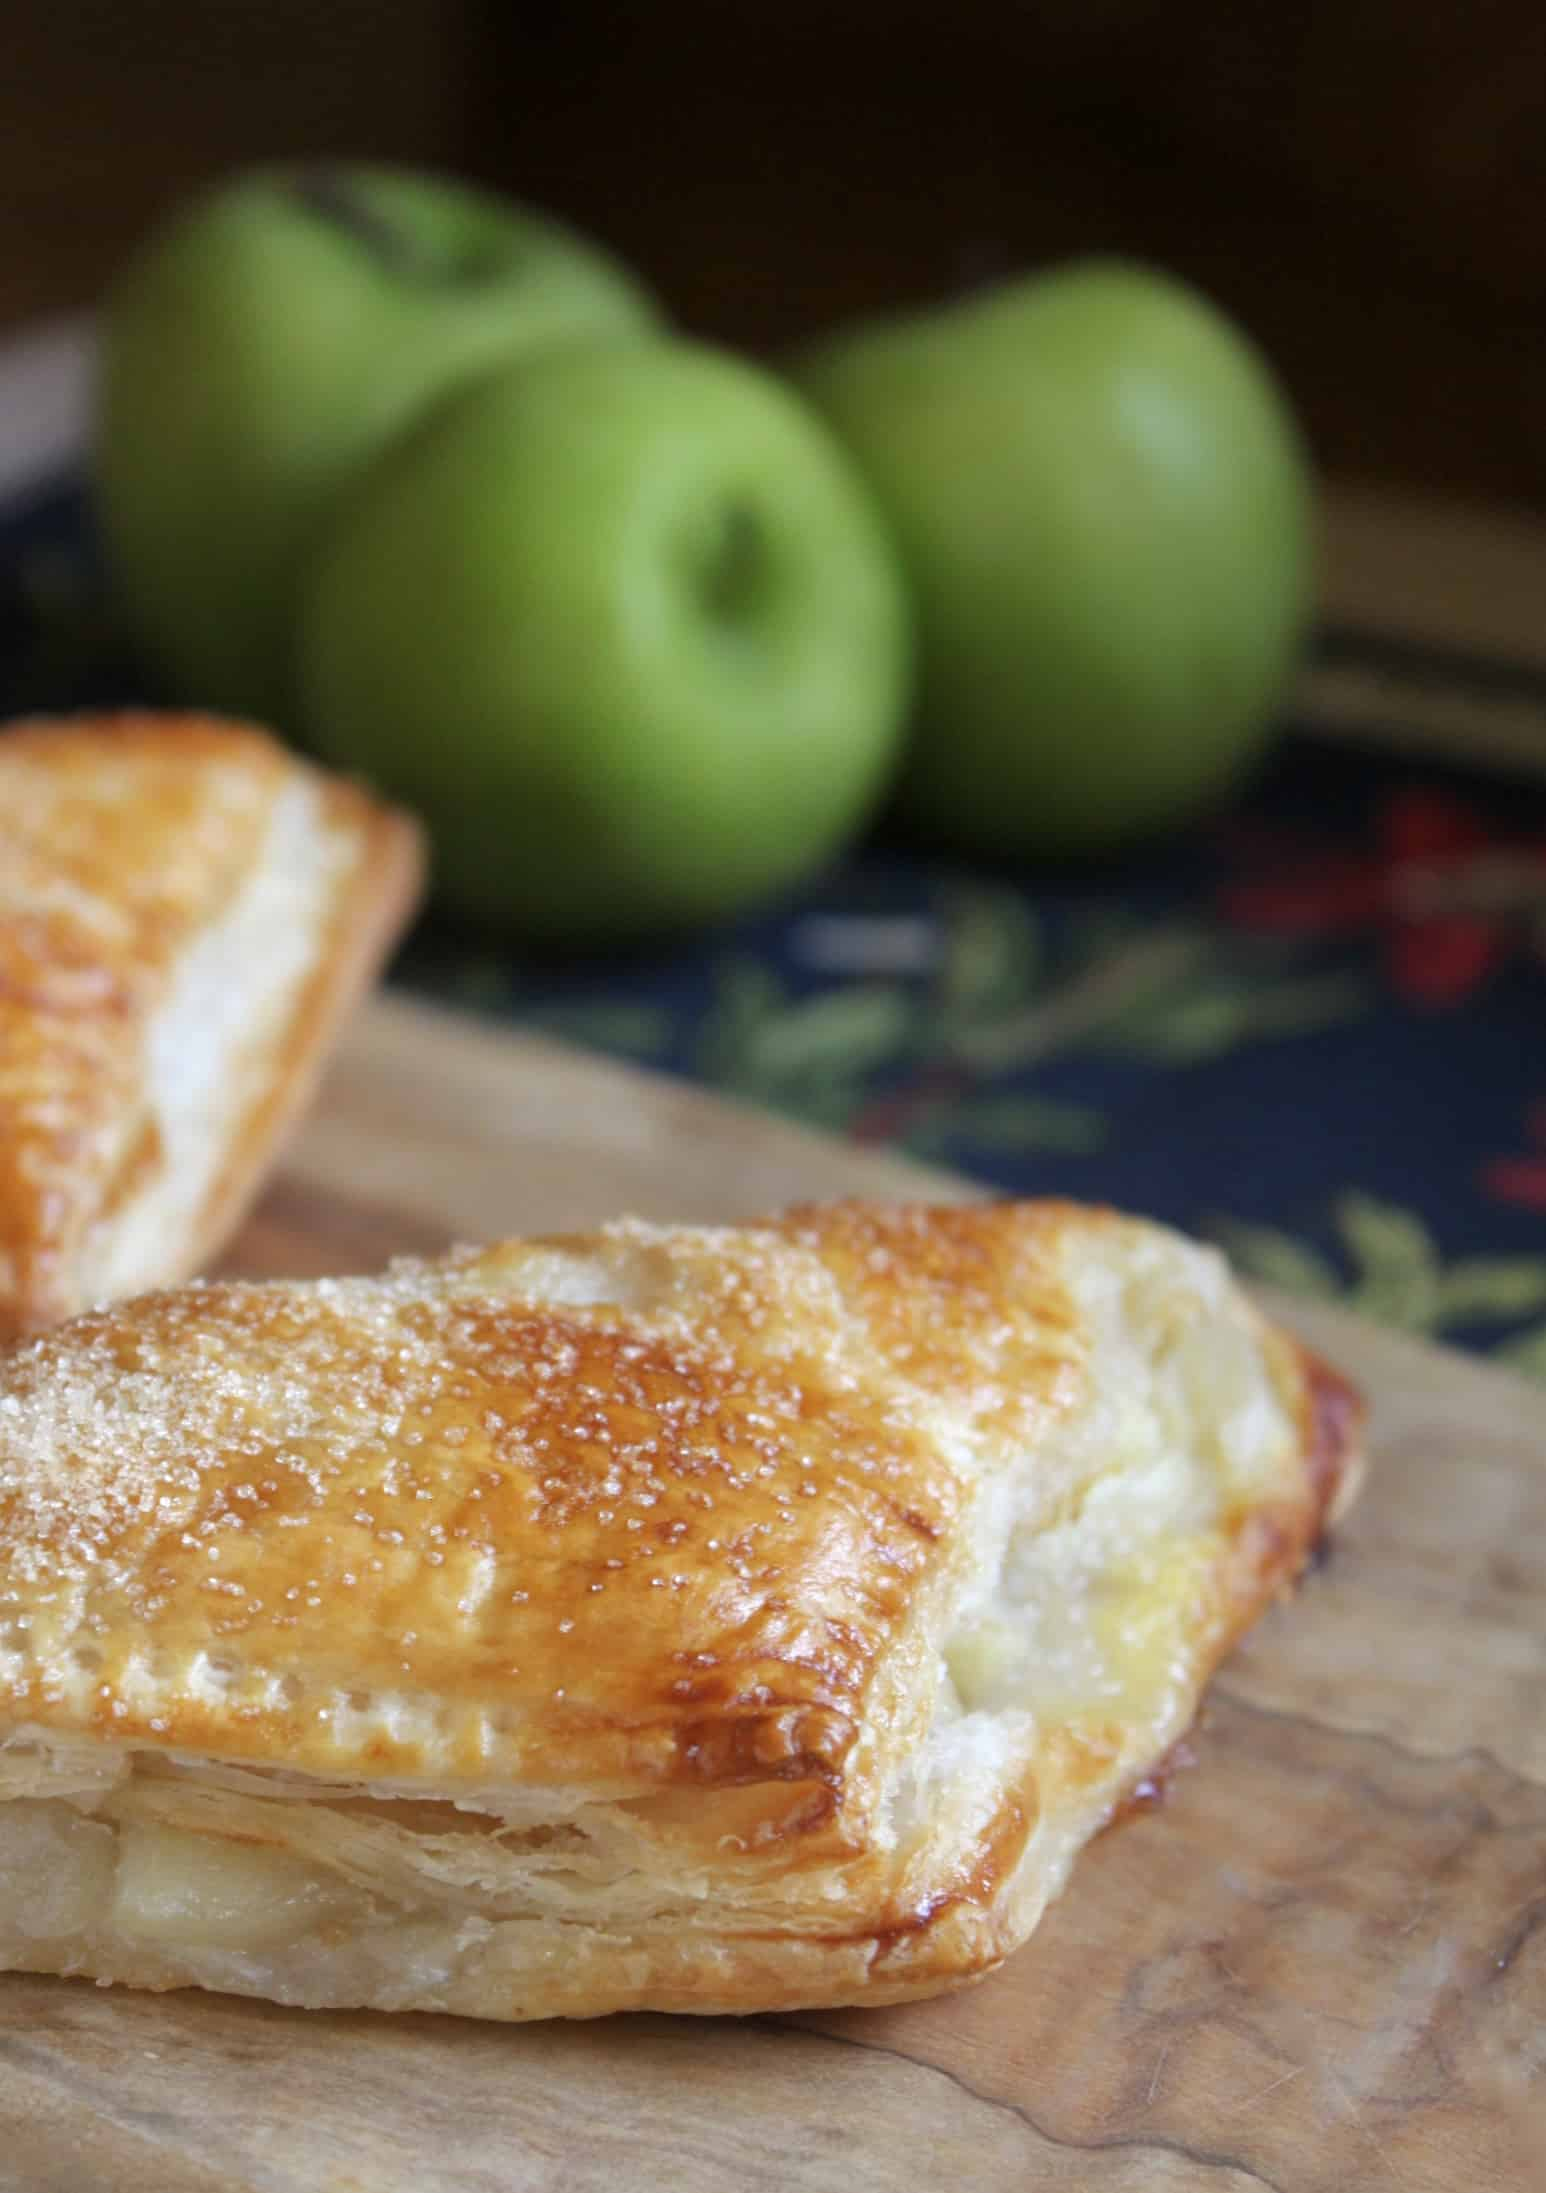 Apple turnover with green apples